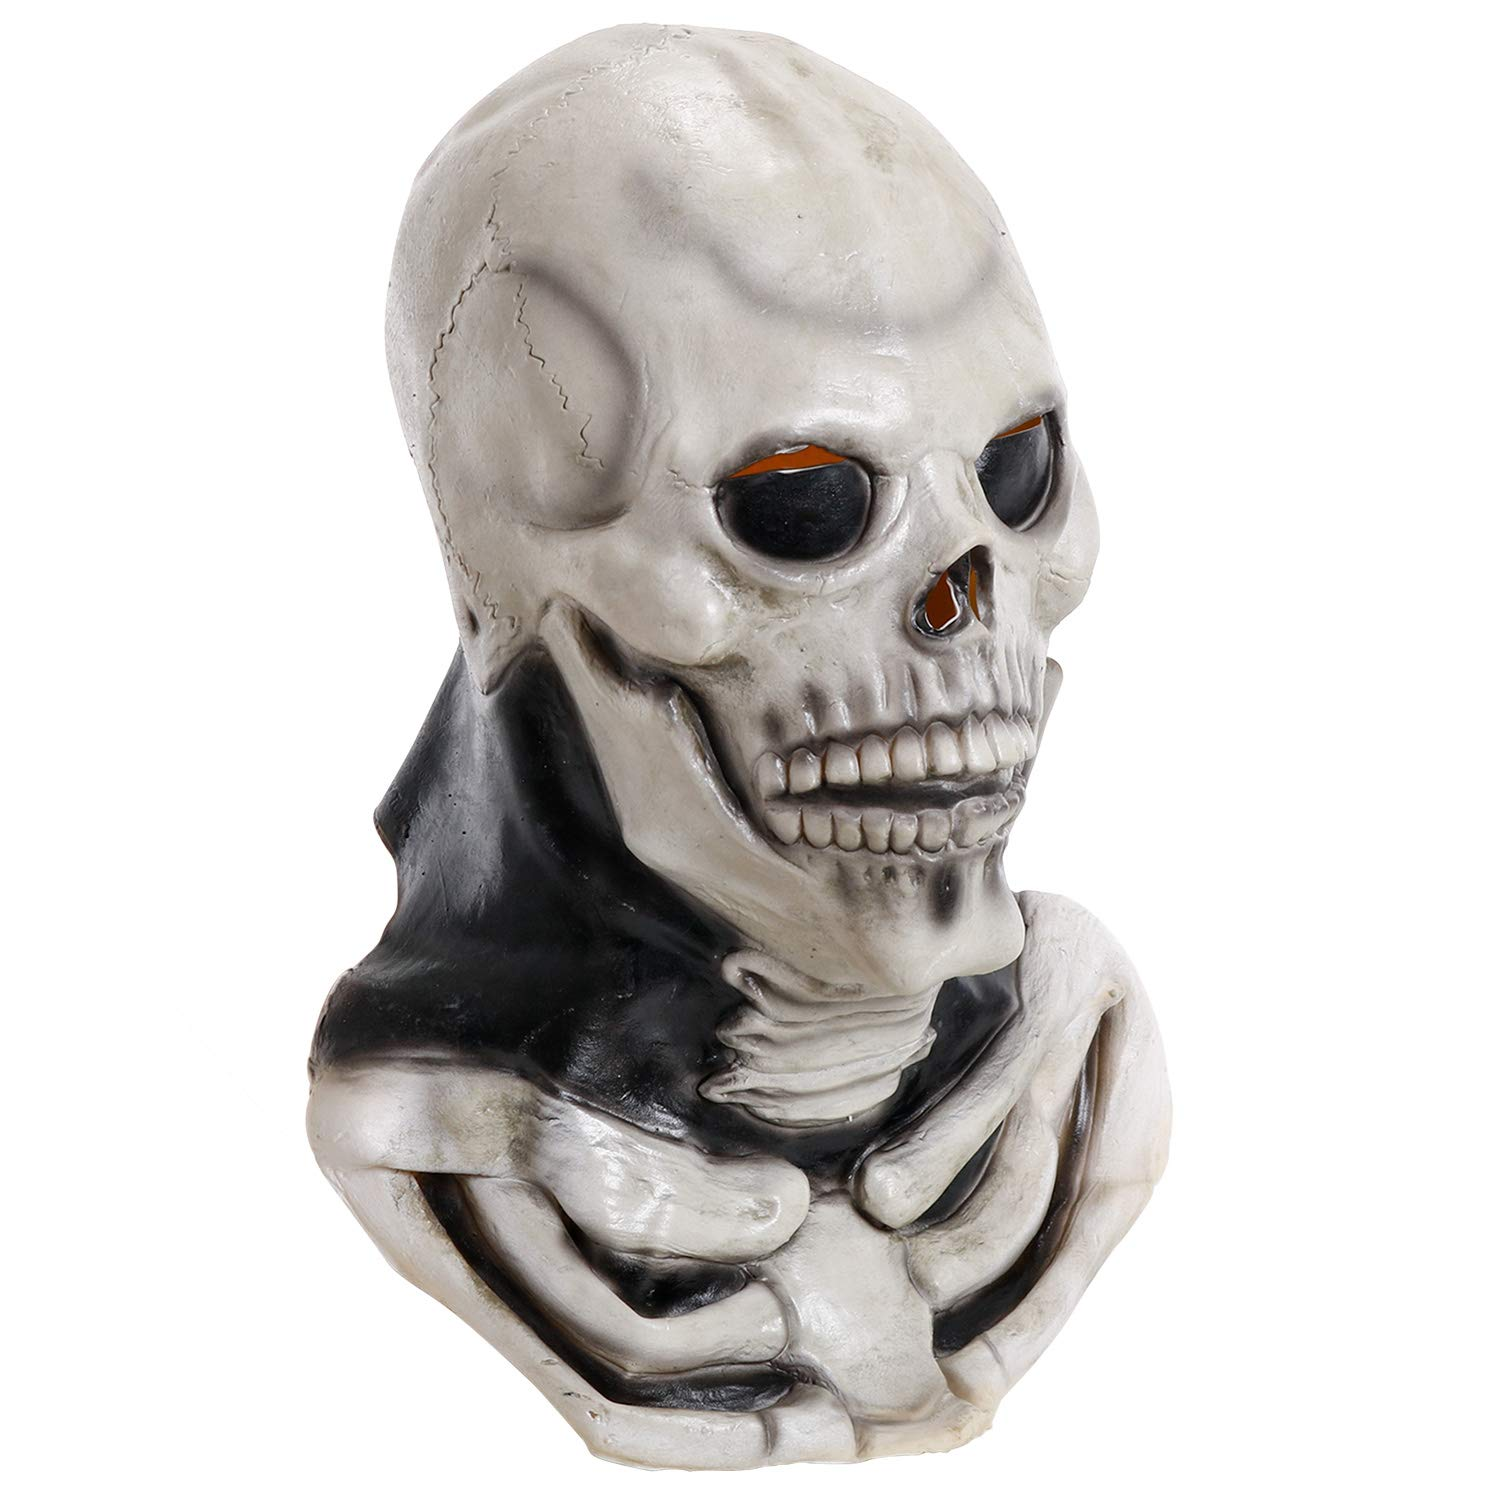 Adult Halloween Full Over Head Mask rubber latex horror scary ghost face hooded